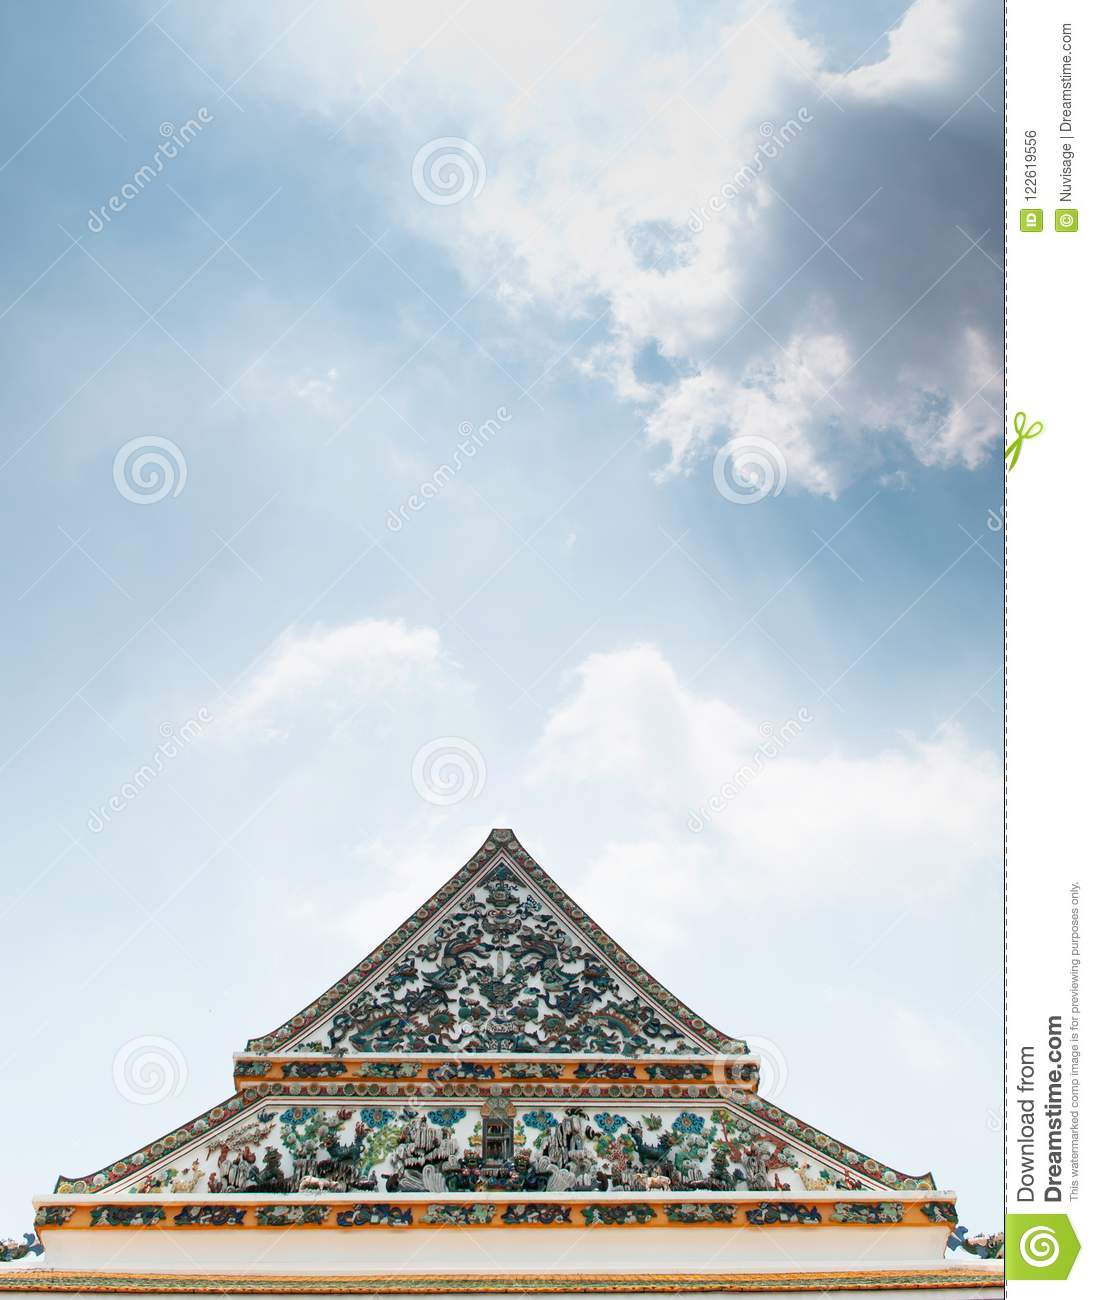 Chinese Style Ornament Ceramic Tiles Facade Of Wat Ratchaorotsar